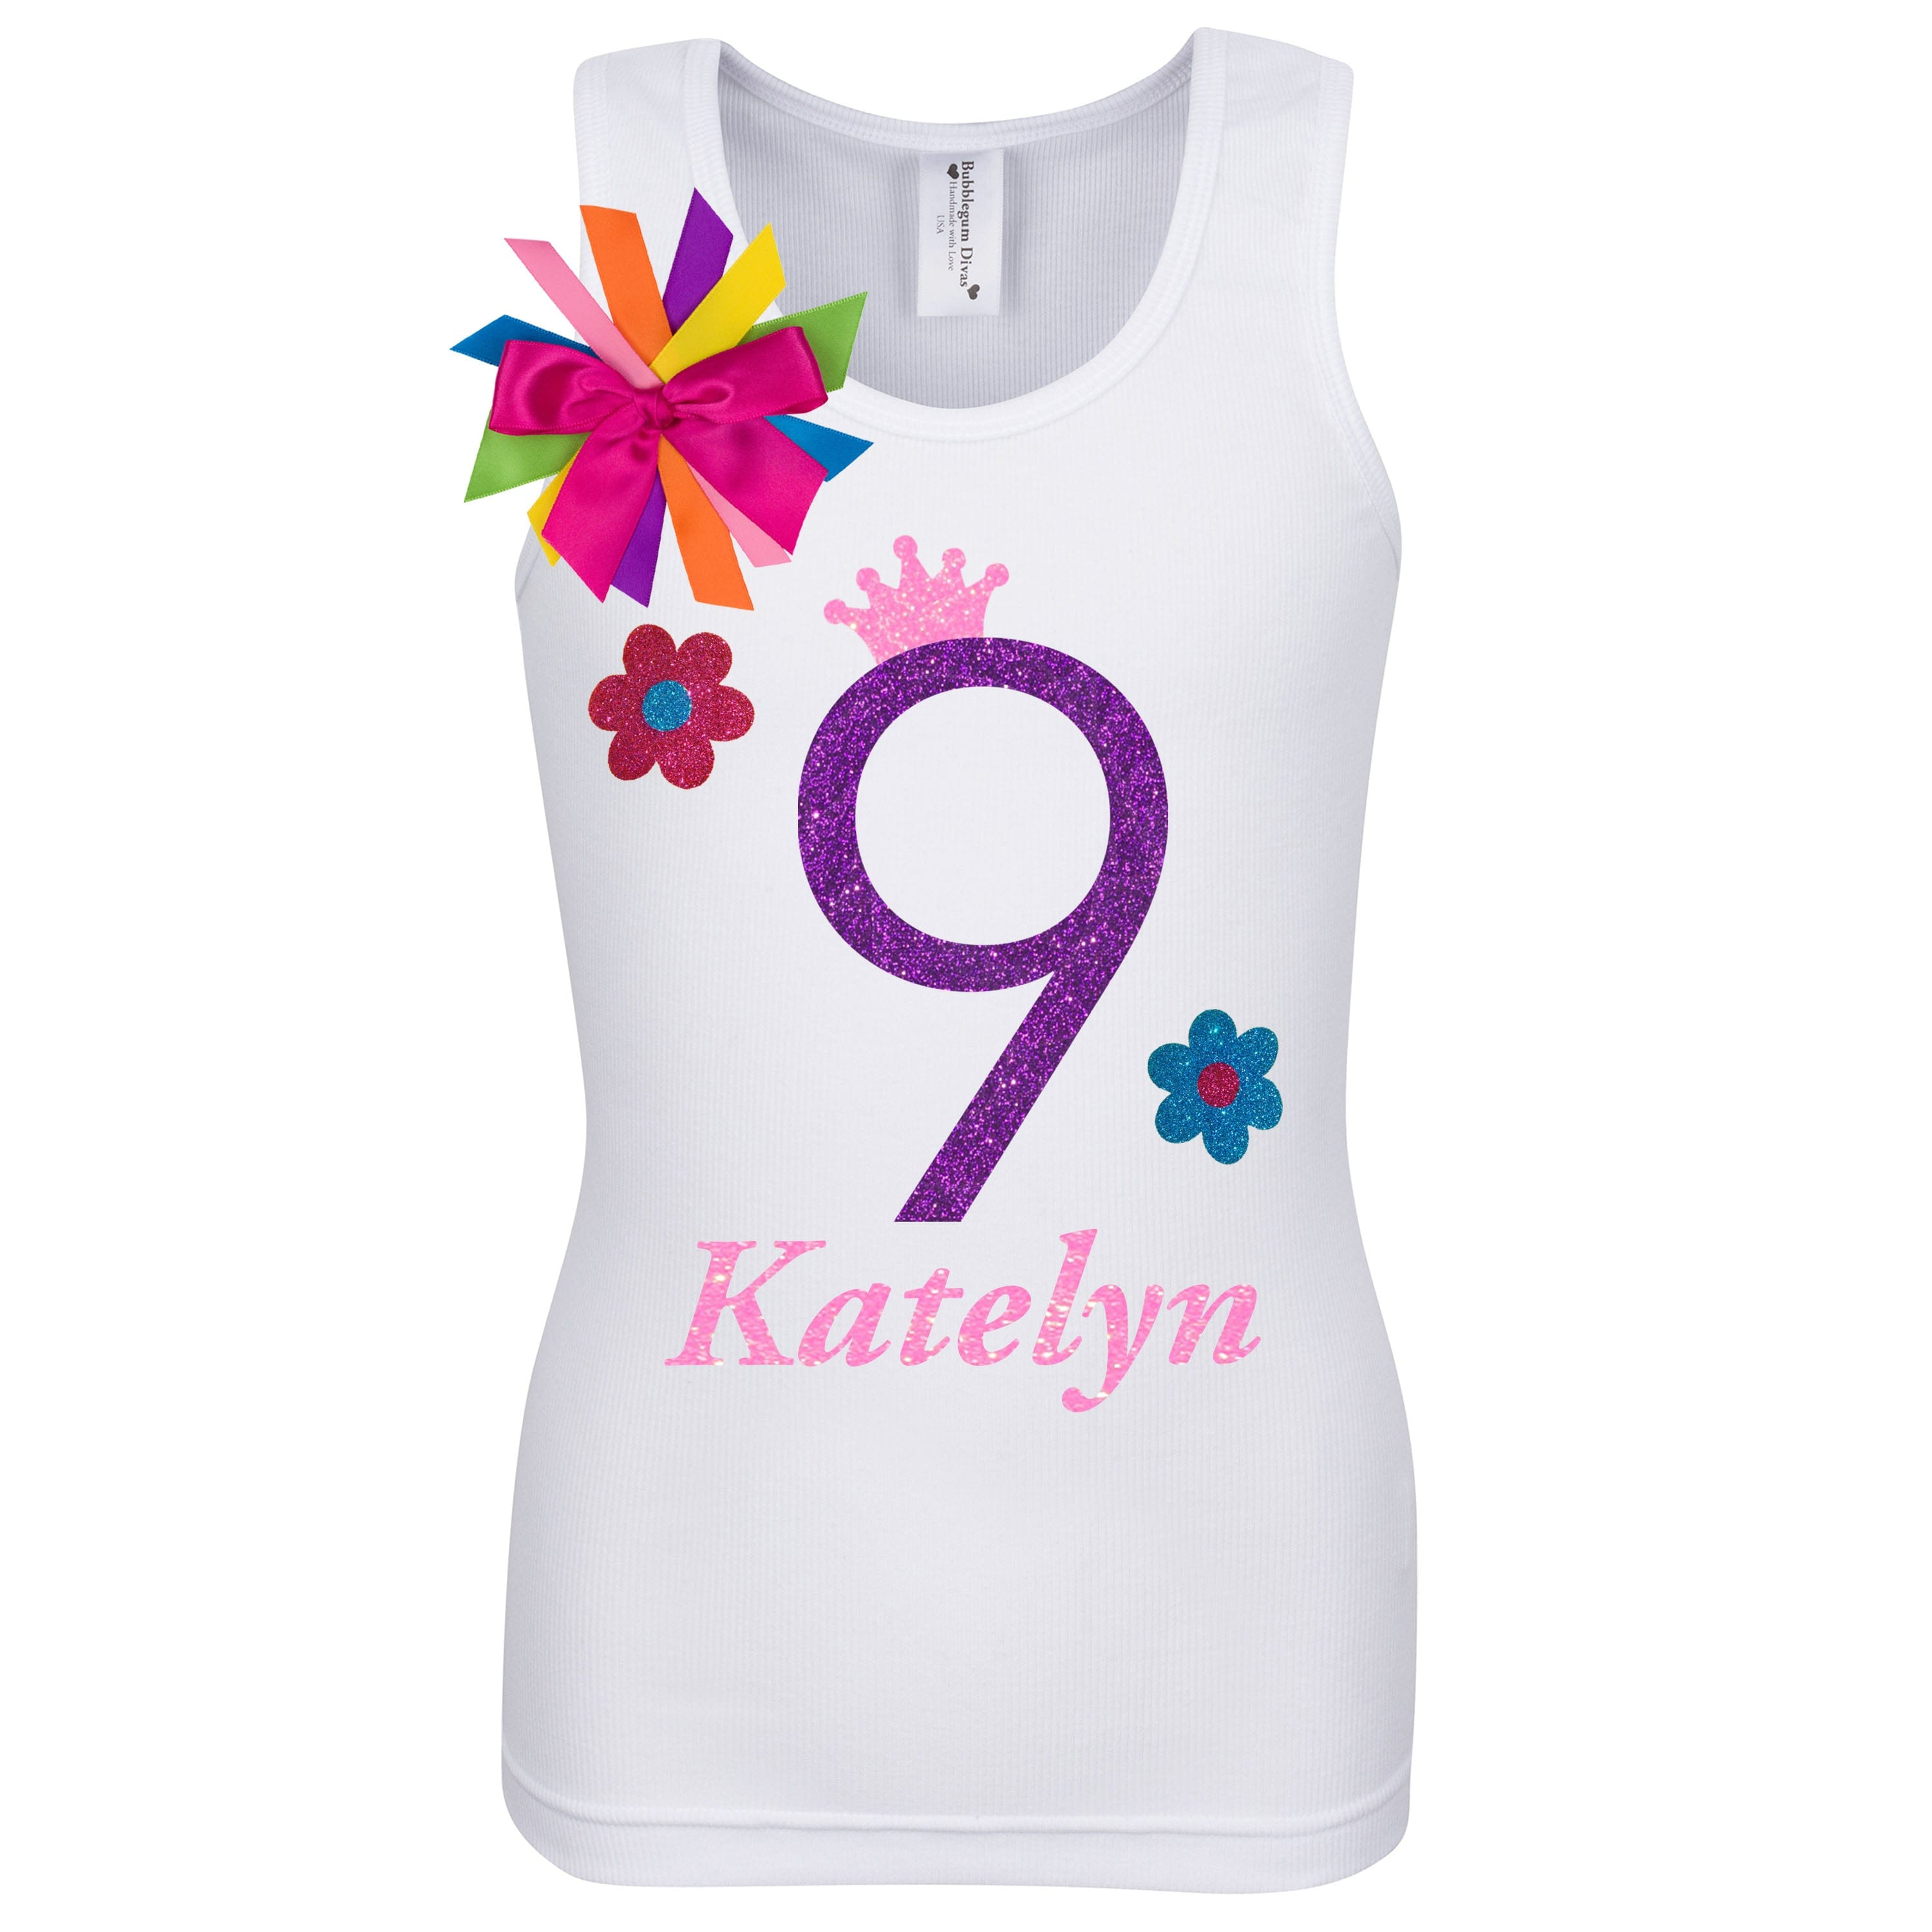 9th Birthday Girl Shirt Daisy Flower Personalized Name Age 9